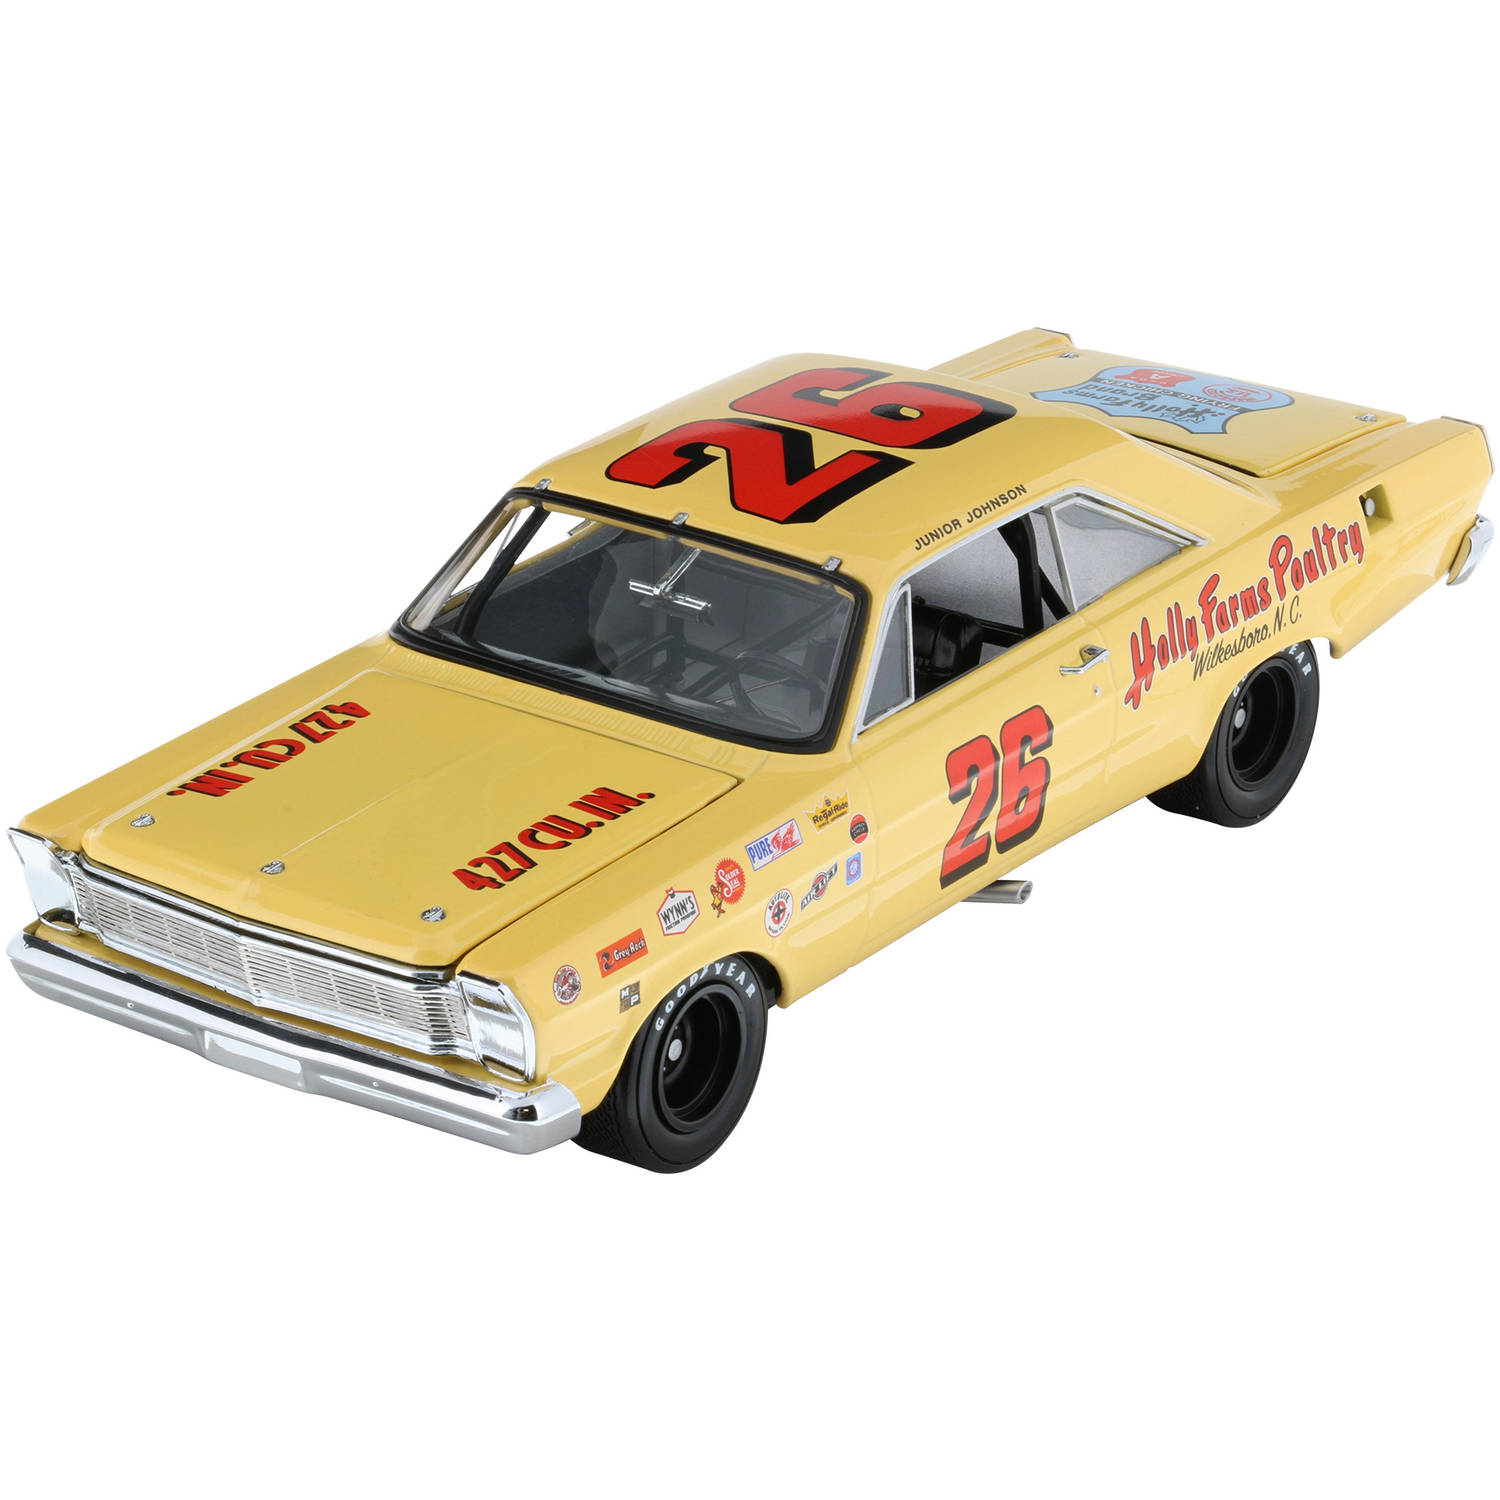 Lionel Racing Junior Johnson Holly Farms 1965 Ford Galaxie Diecast Car, 1:24th Scale,... by Lionel Racing